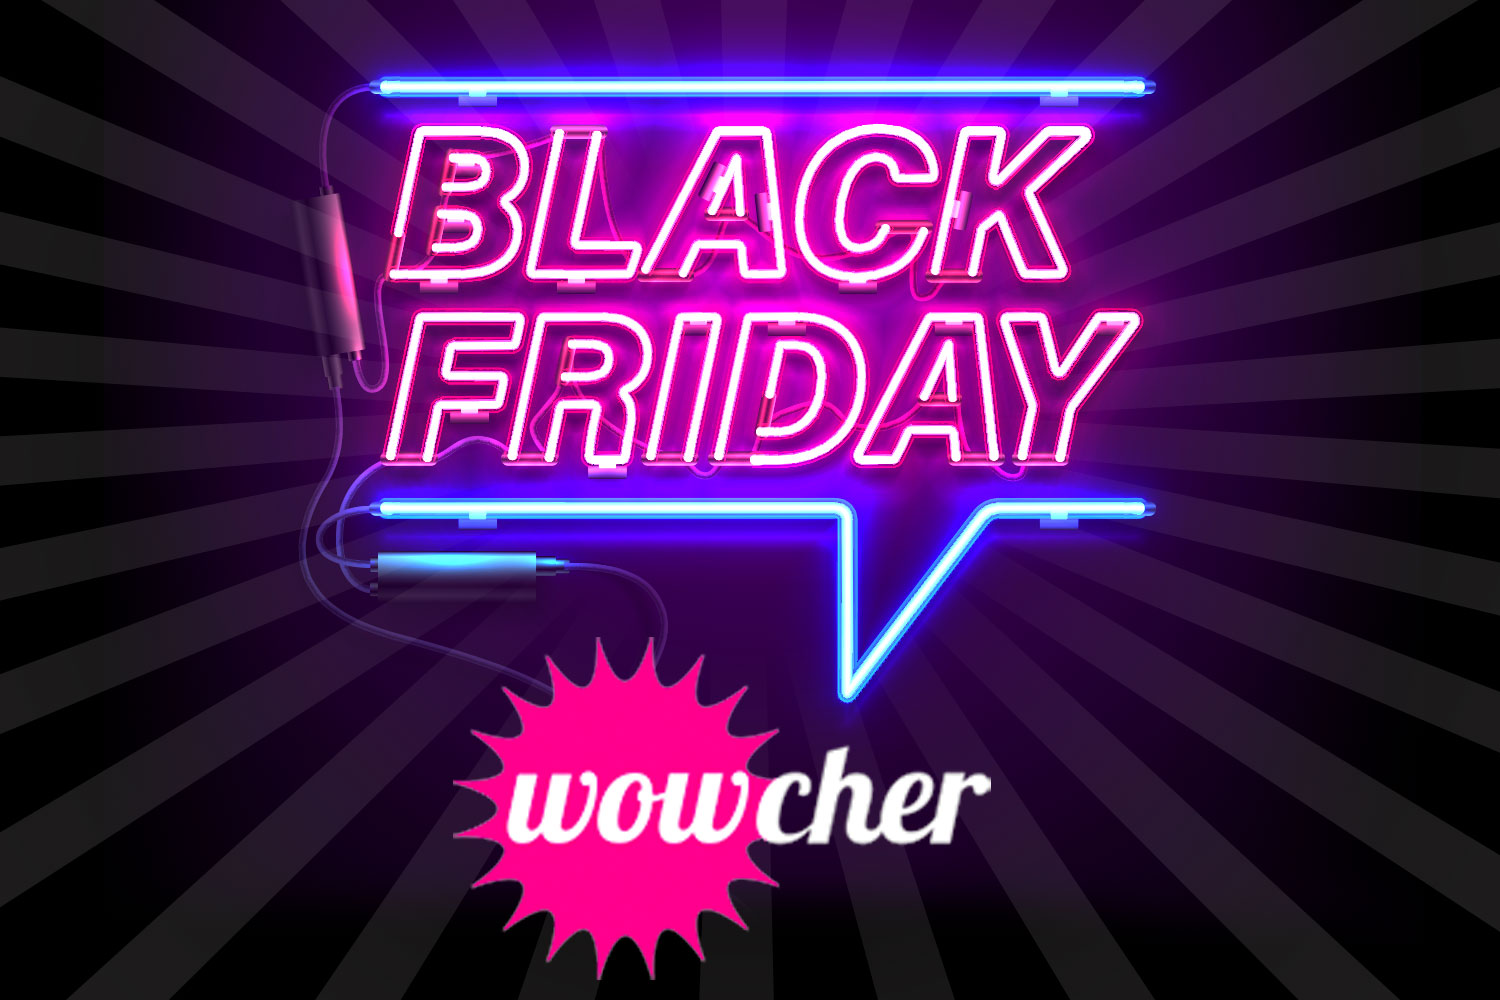 Toys are just one category to see discounts from Wowcher